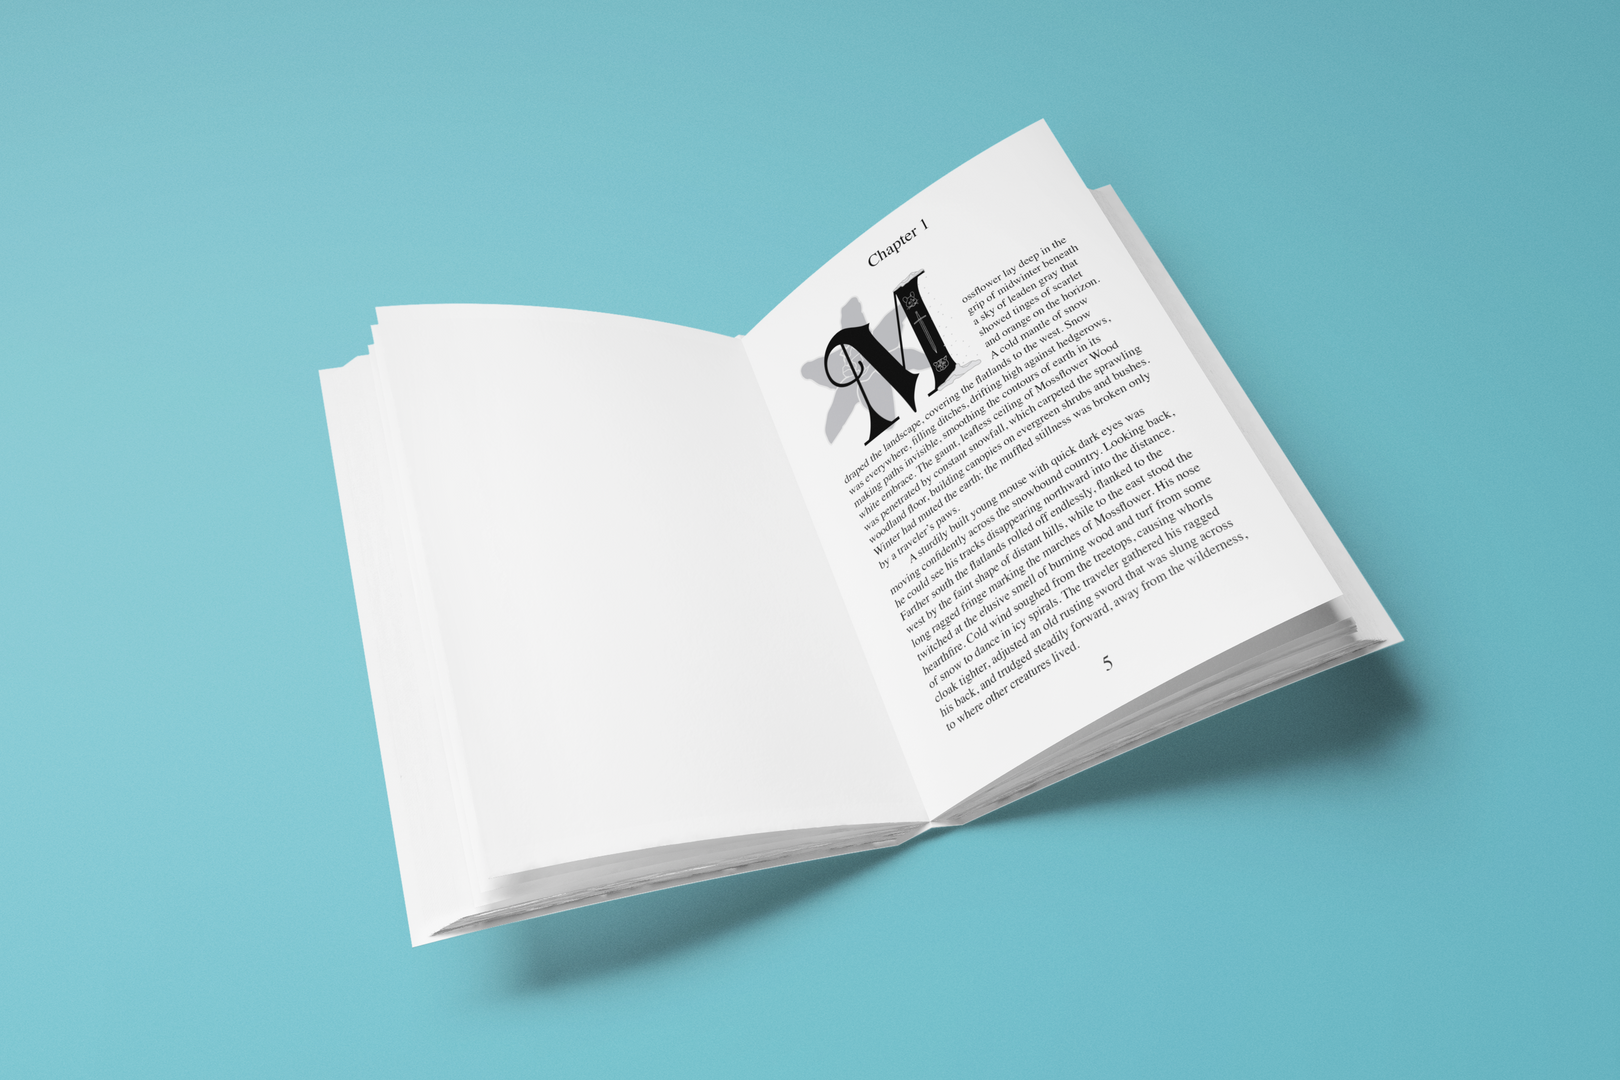 mockup-of-an-open-book-on-a-solid-color-